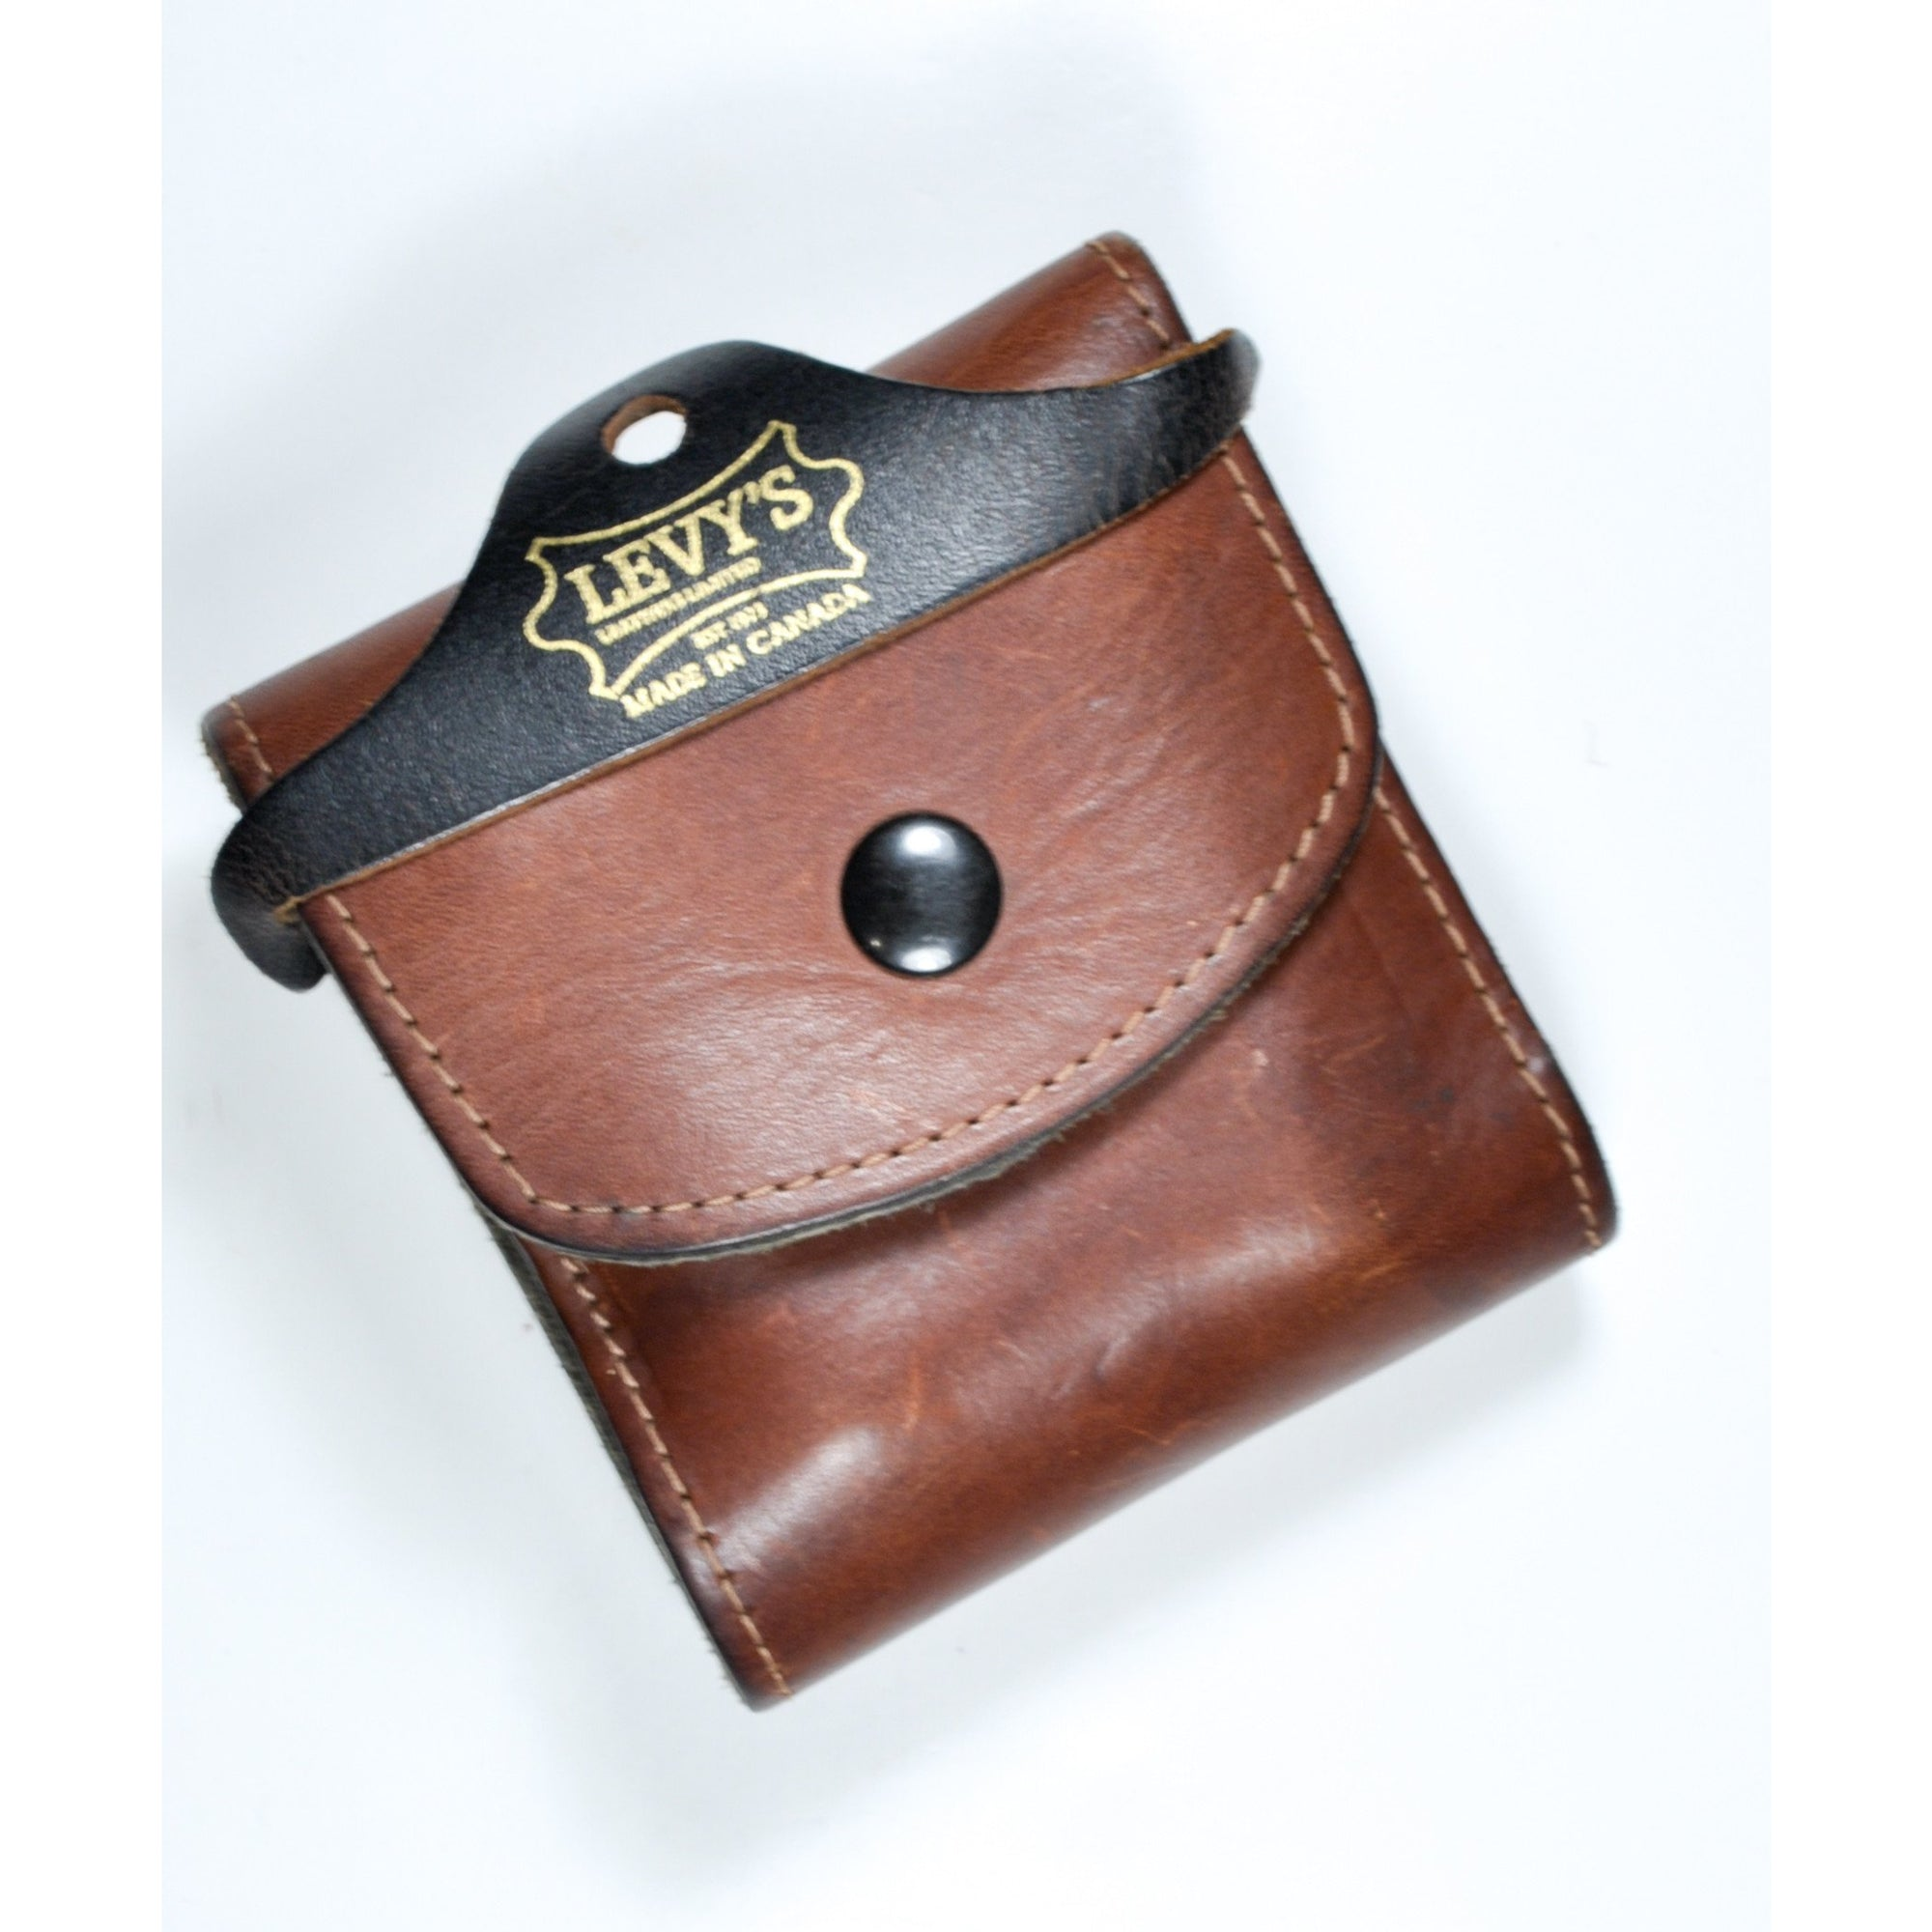 Levy's Heavy Leather Multi Choke Lined Belt Wallet,New Magazines- Canada Brass